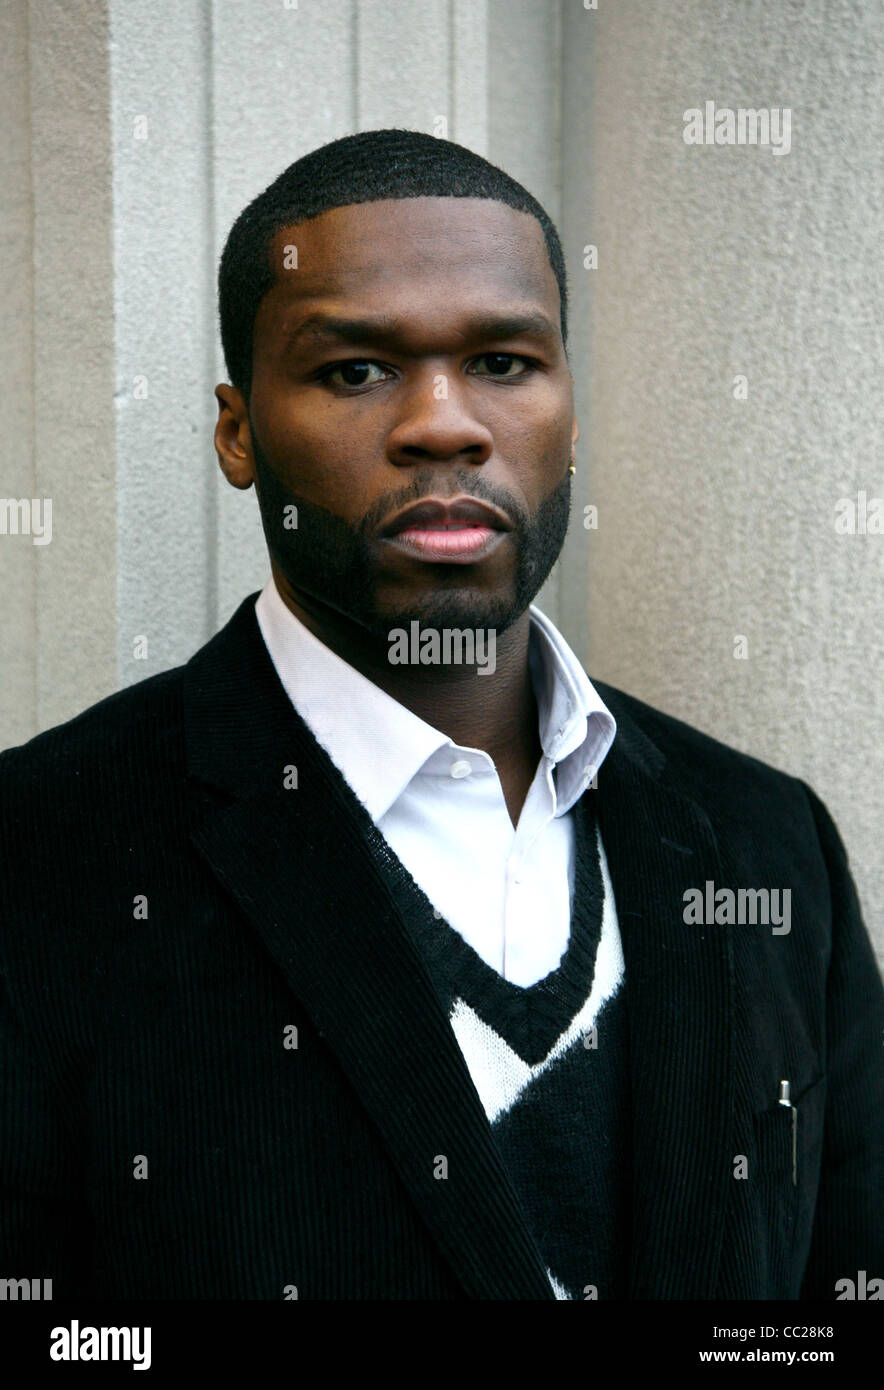 50 CENT 13 (2010) - Stock Image